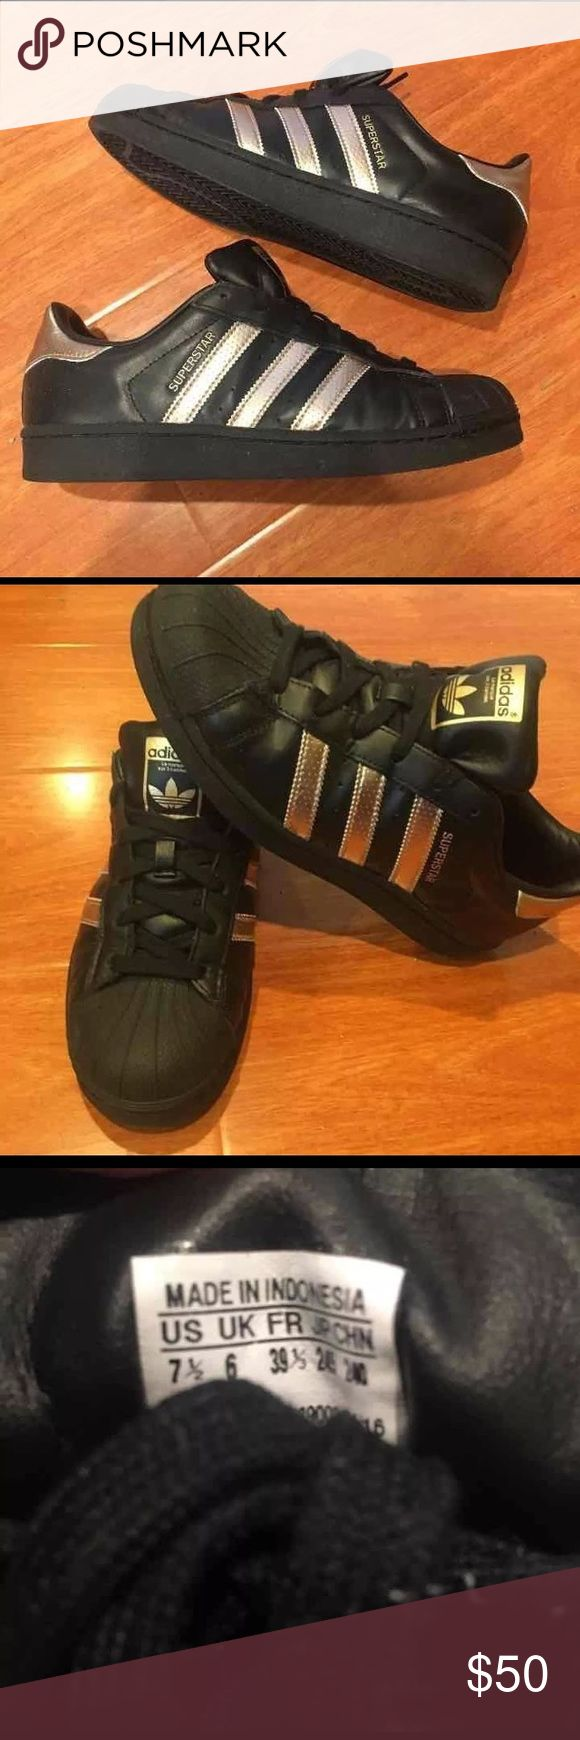 Adidas Superstars Great condition hardly worn black and gold adidas Superstars. Size 7.5 women's, should also fit 8. Please know your size in these prior to purchasing. adidas Shoes Sneakers